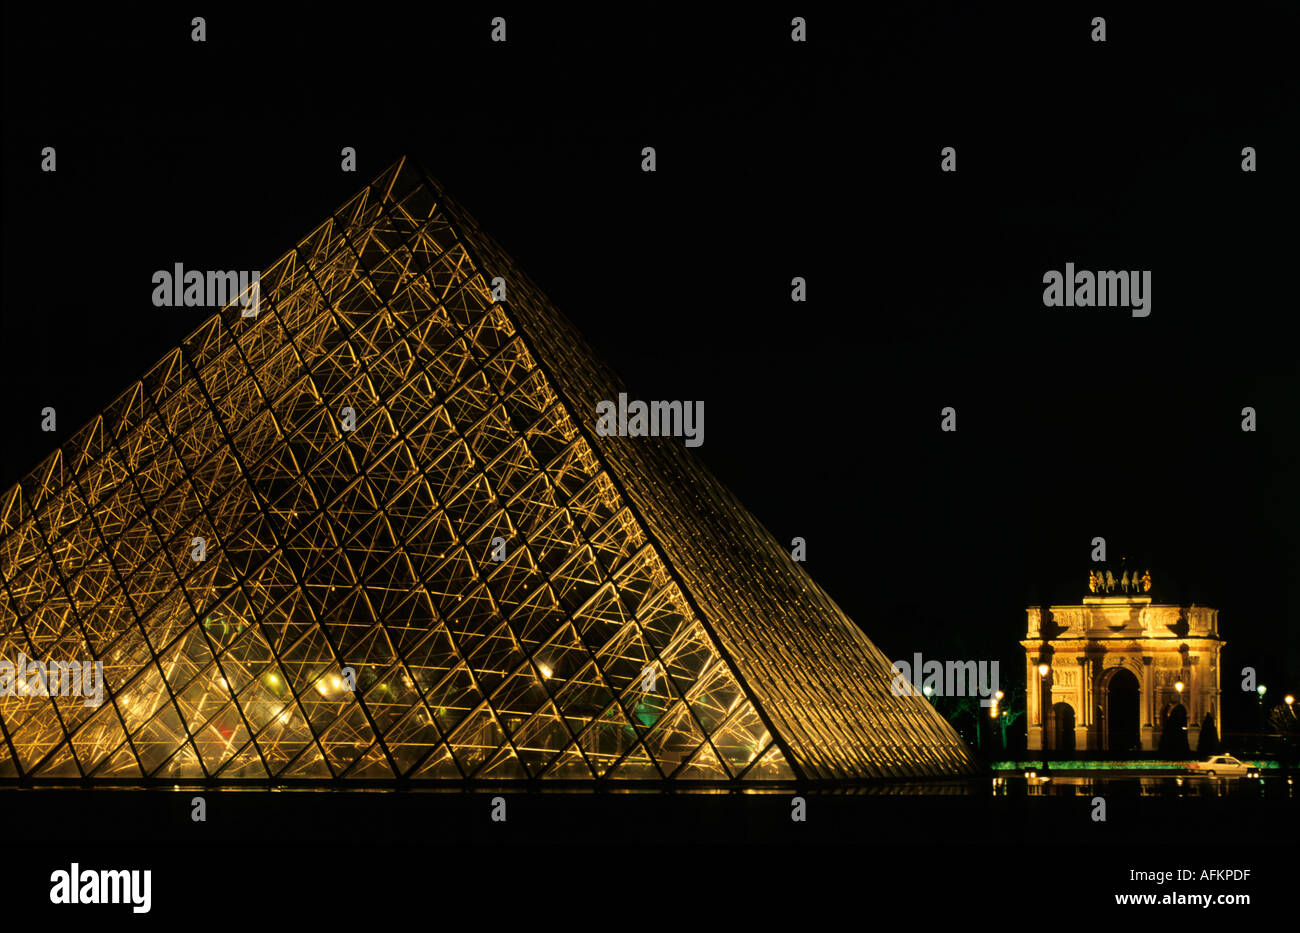 The Louvre Pyramid And The Arc De Triomphe Du Carrousel At Night